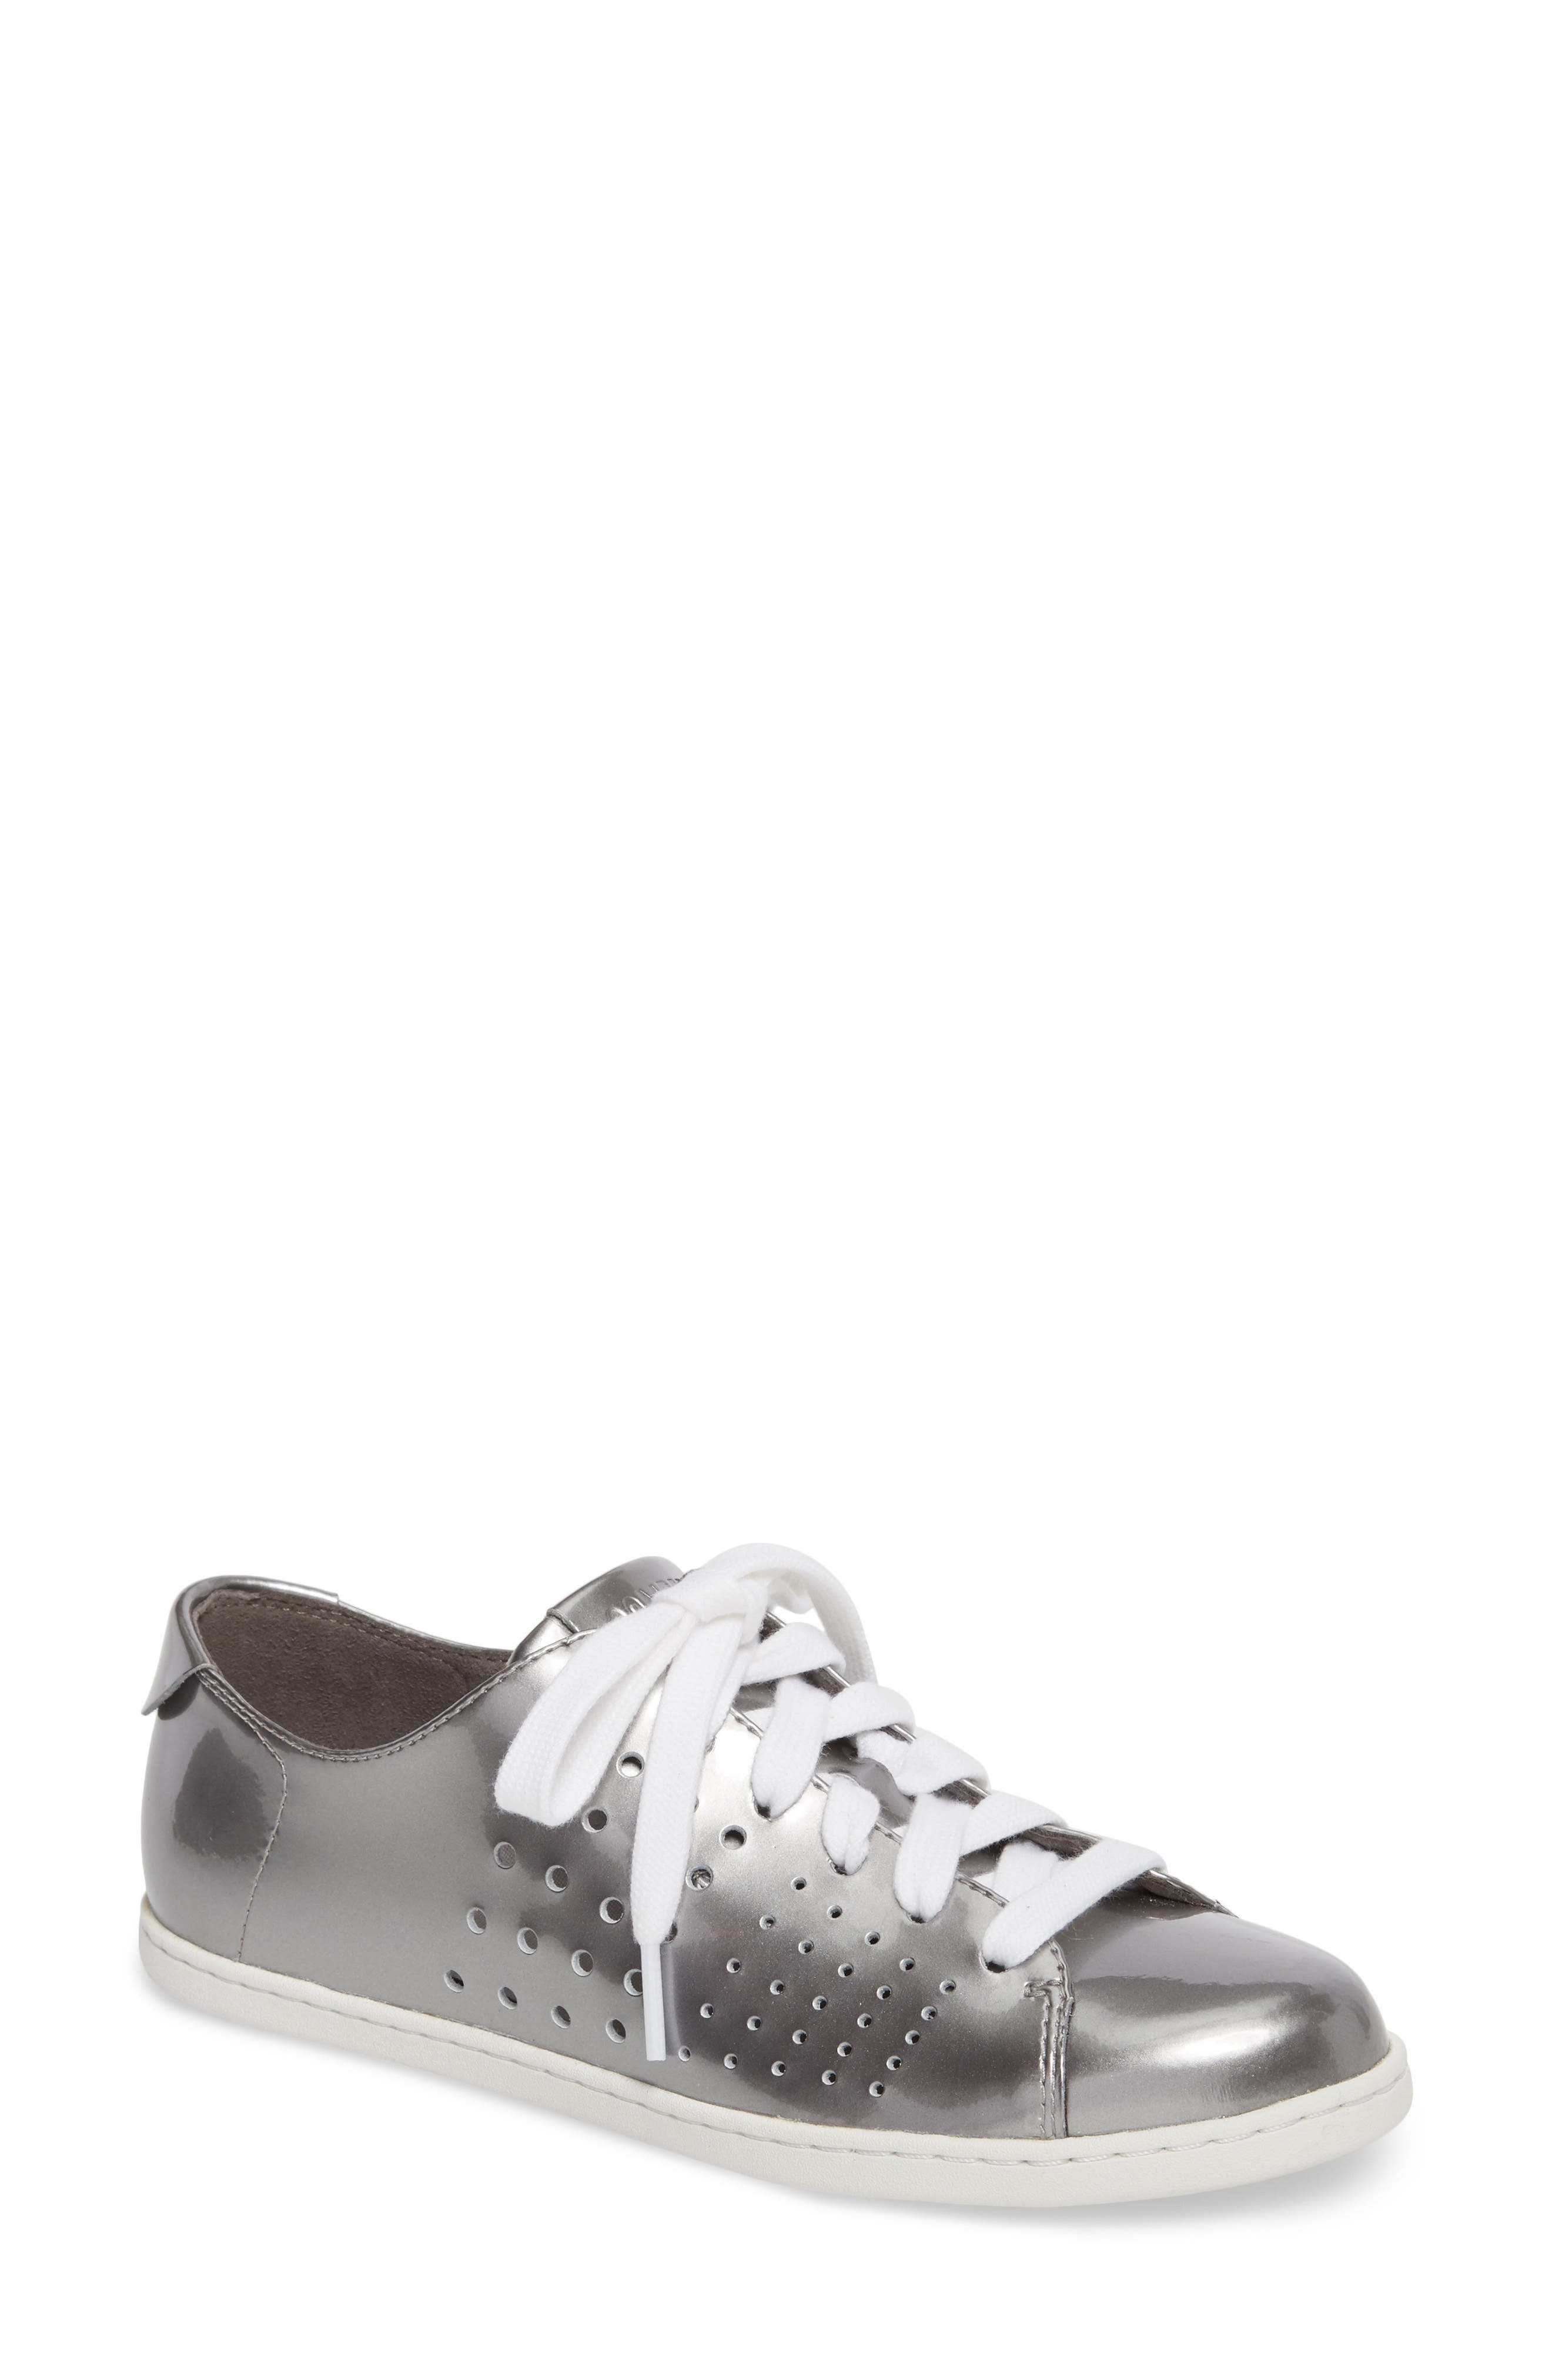 Twins Perforated Low Top Sneaker,                             Main thumbnail 1, color,